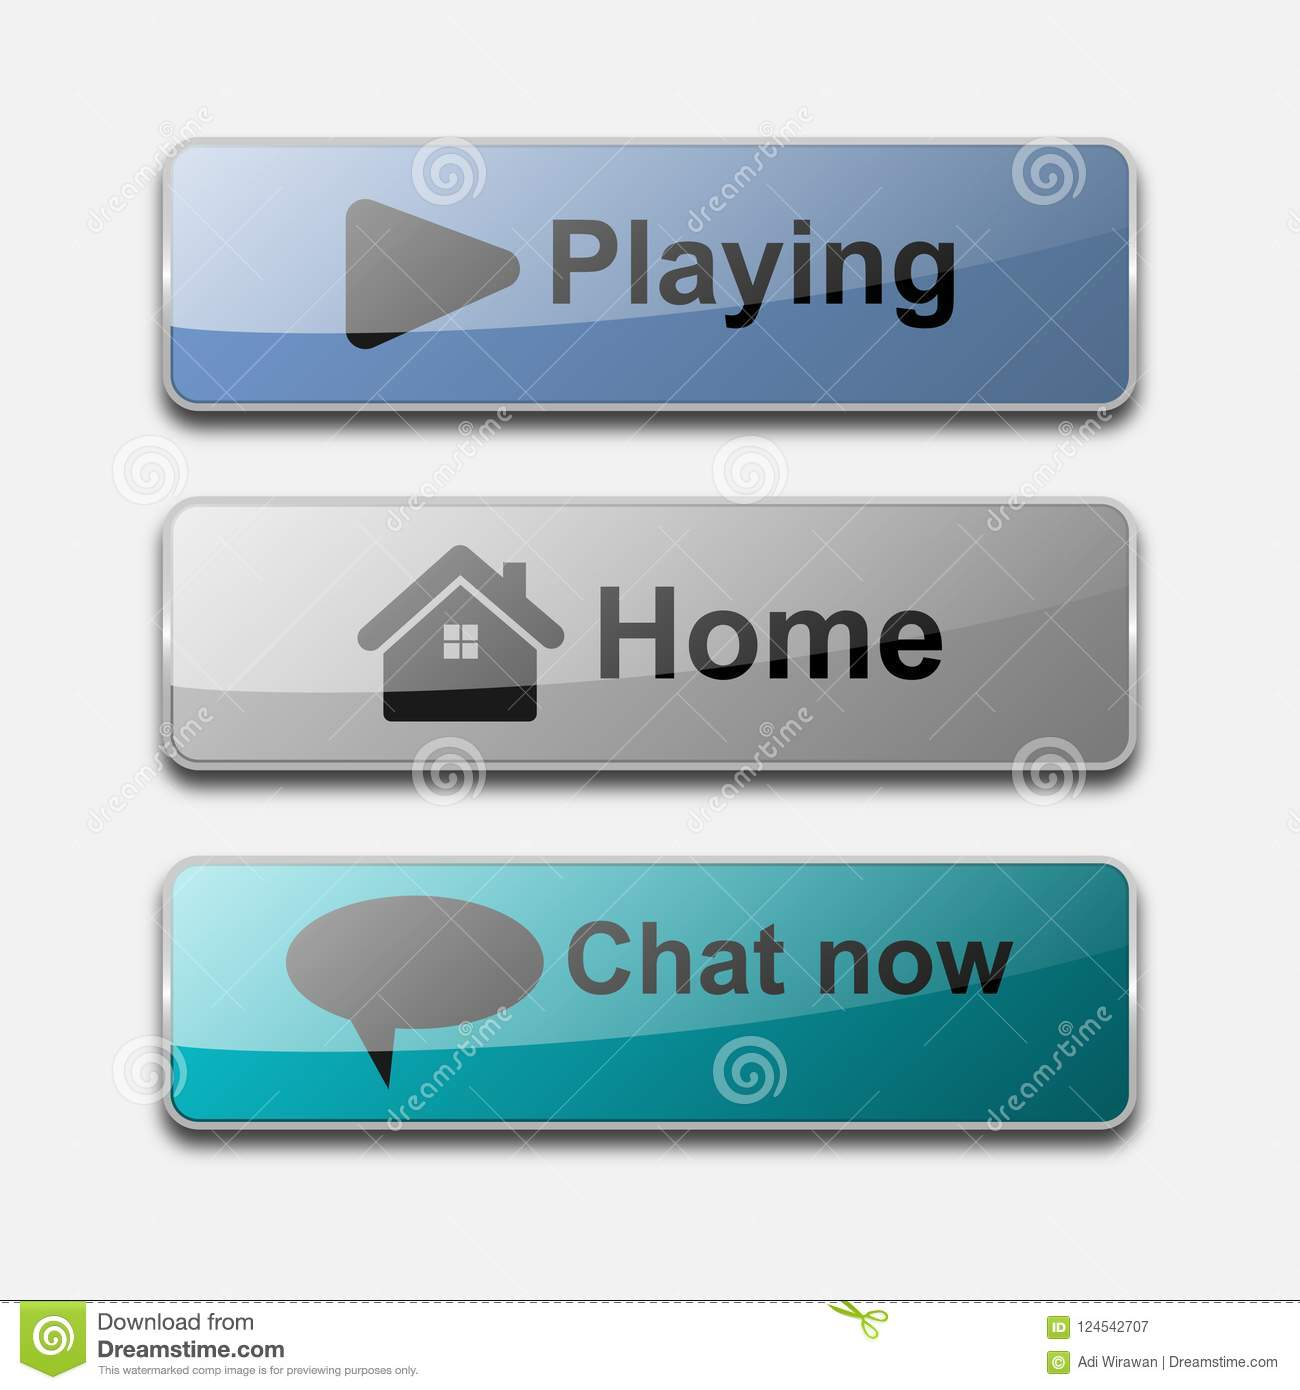 3D glossy action web button vector design.